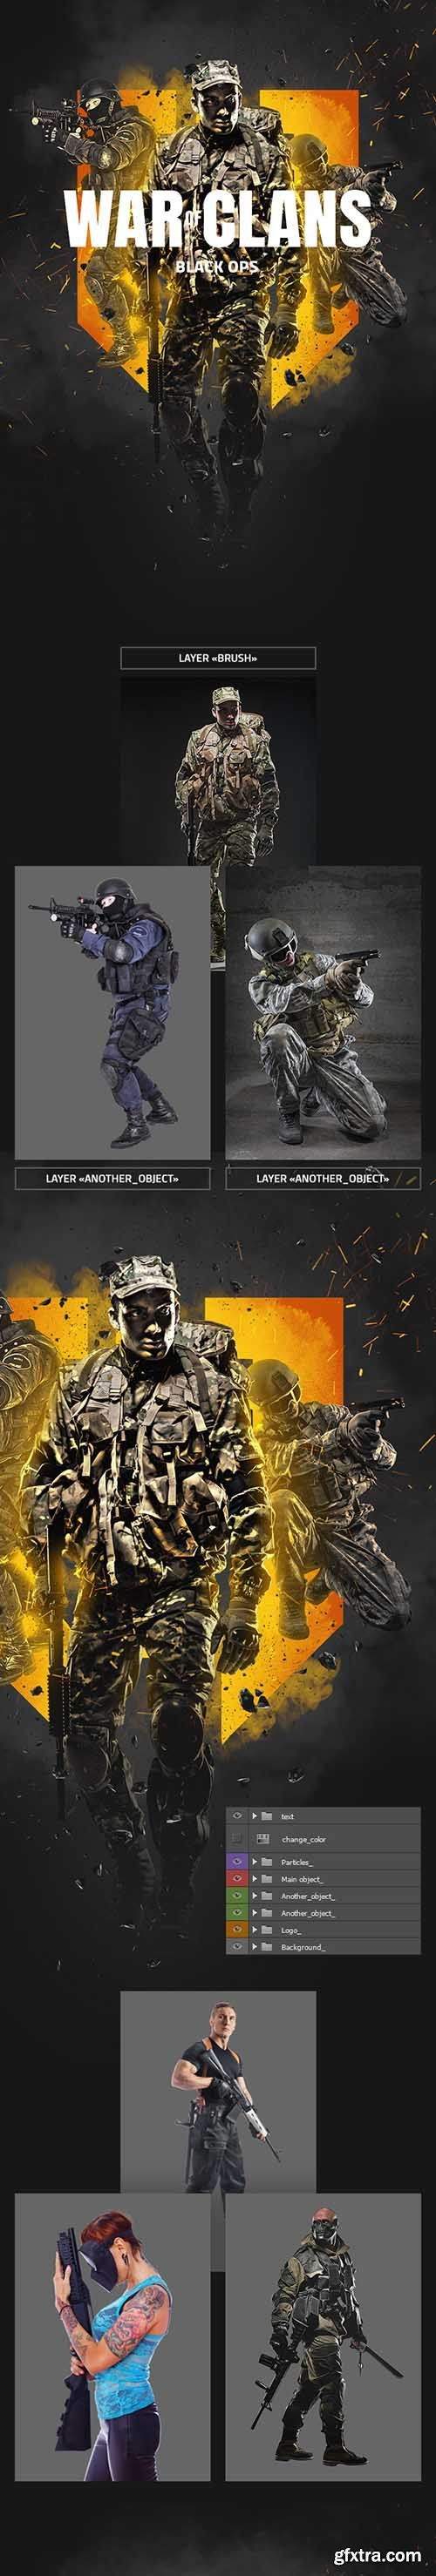 Graphicriver War Of Clans Photoshop Action 22778606